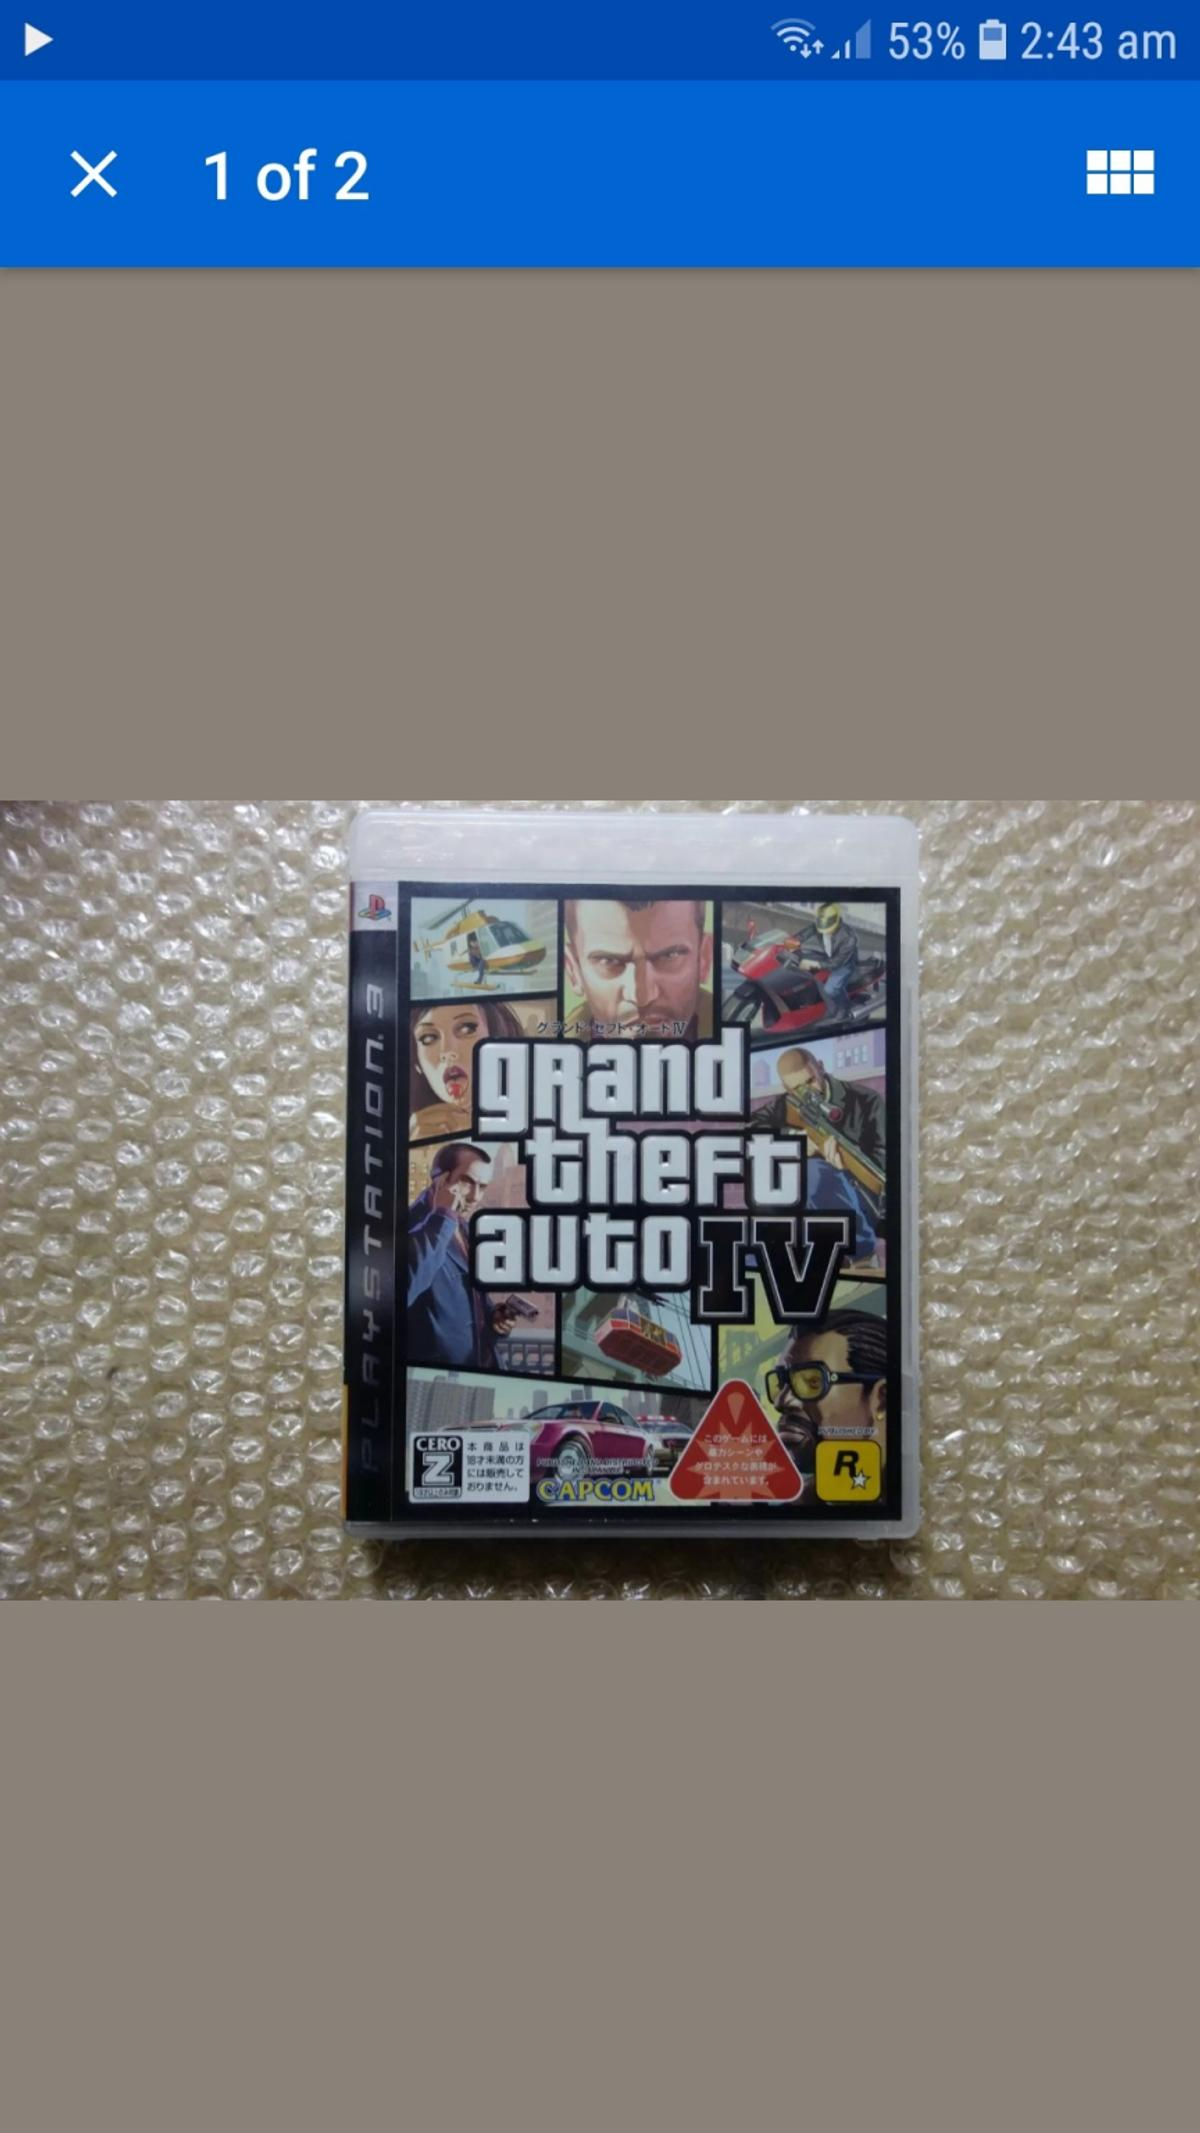 Ps3 Gta 4 Japanese Game Region Free In St1 Trent For 9 50 For Sale Shpock